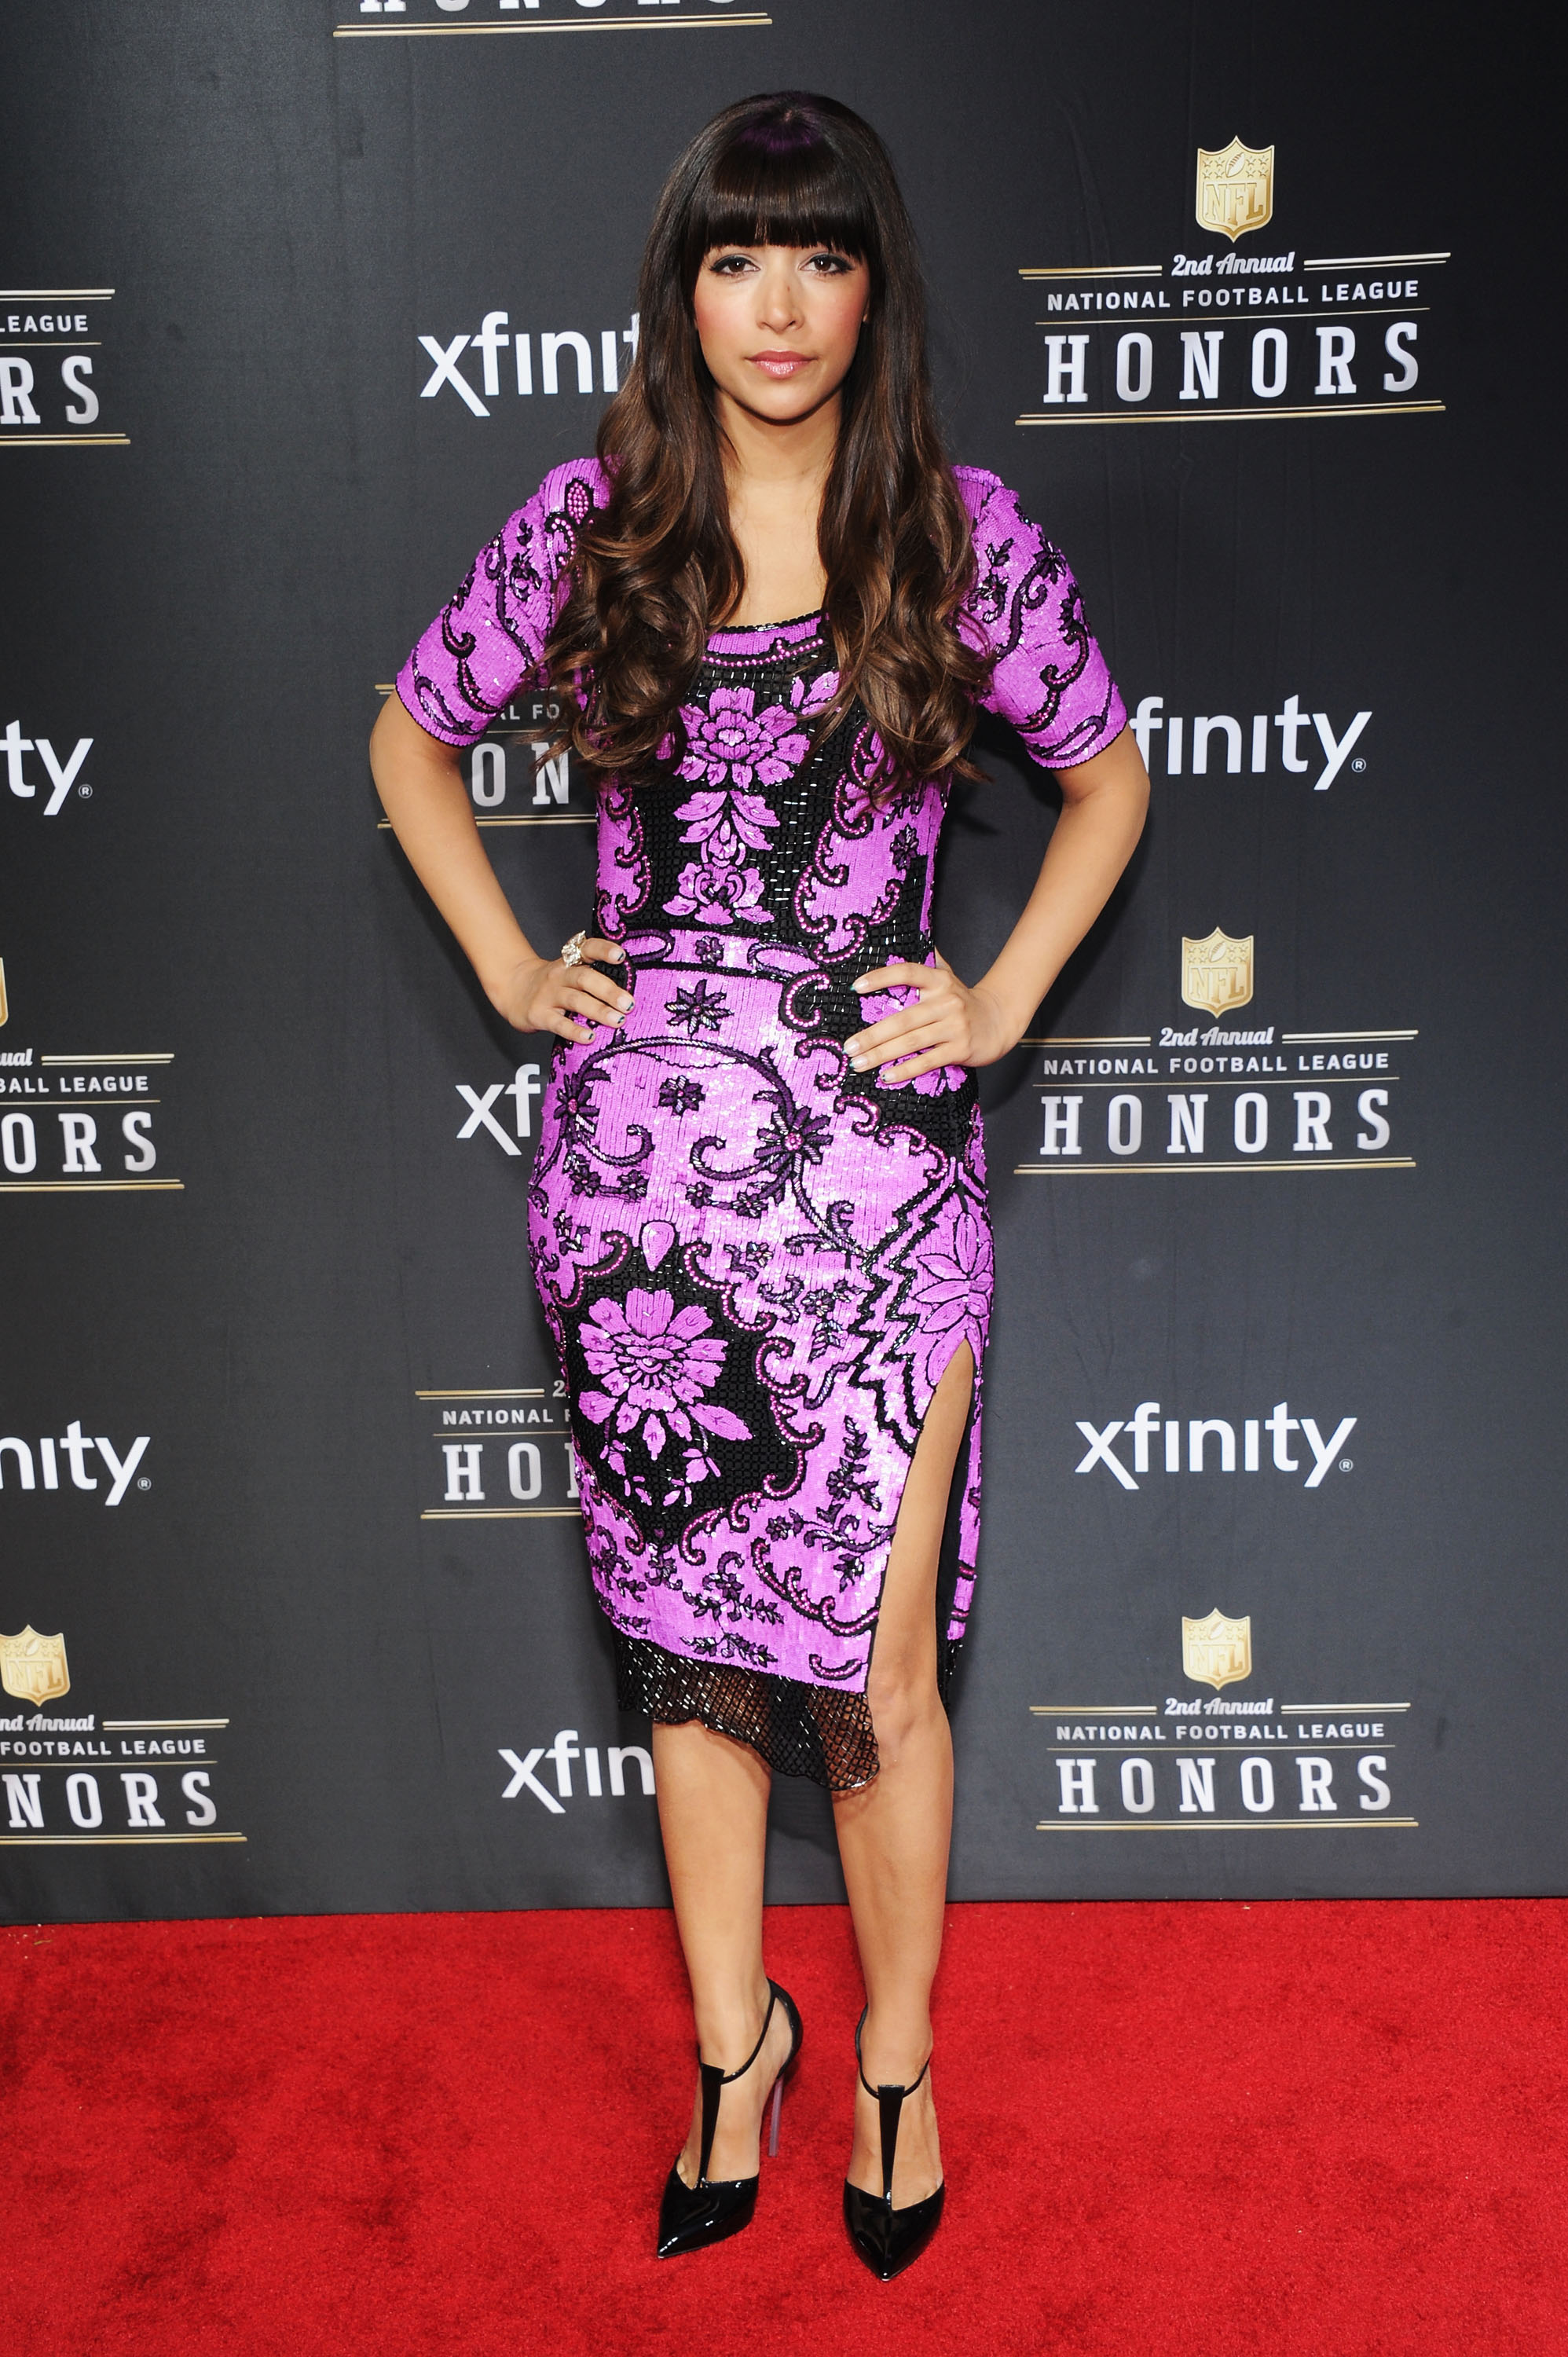 Hannah Simone didn't short on the bold prints, bright purple color, or thigh-high split appeal at the NFL Honors award show.